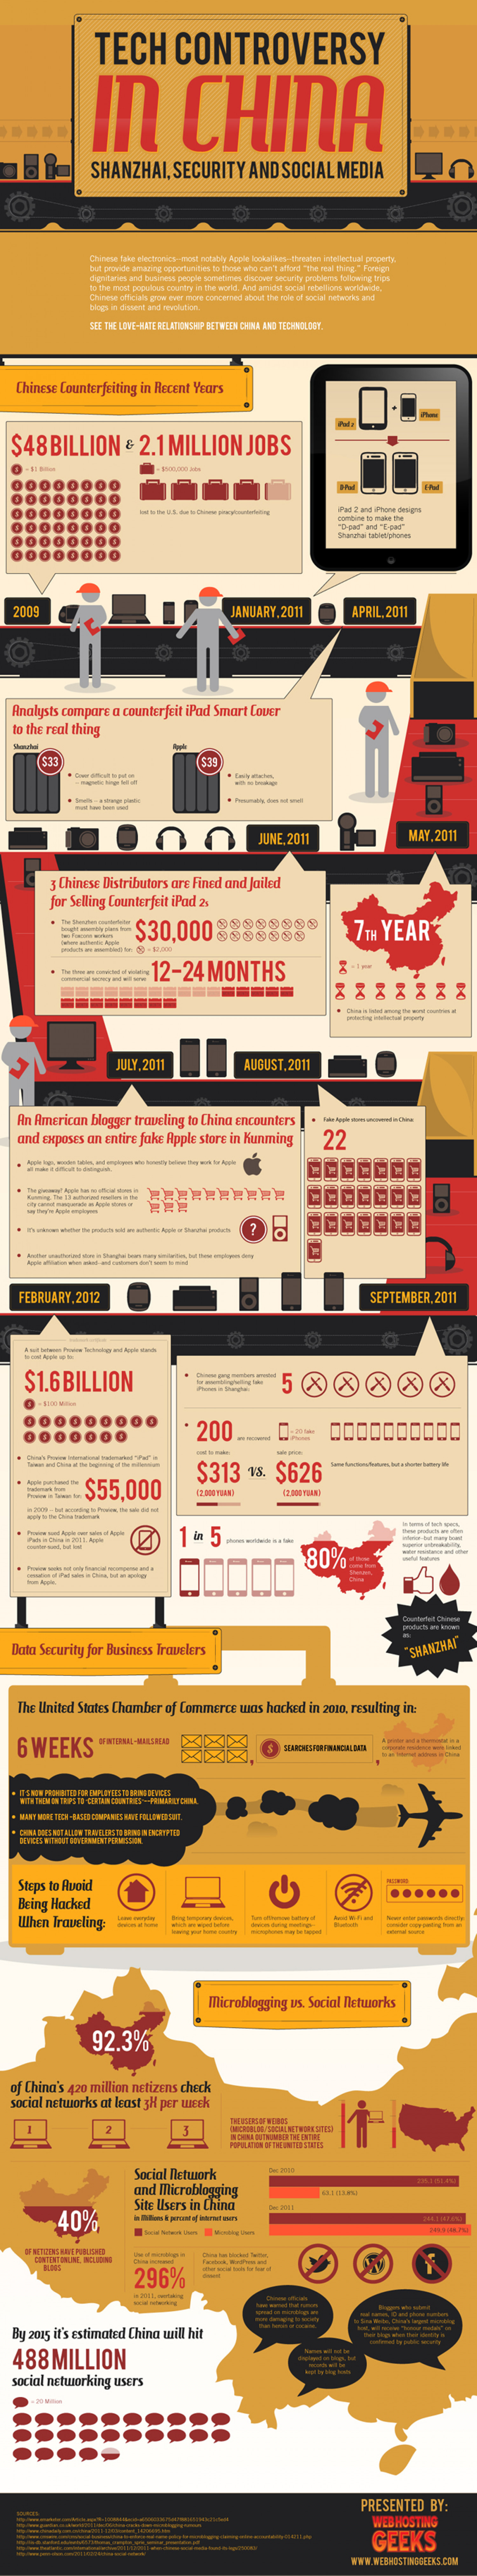 Tech controversy Infographic